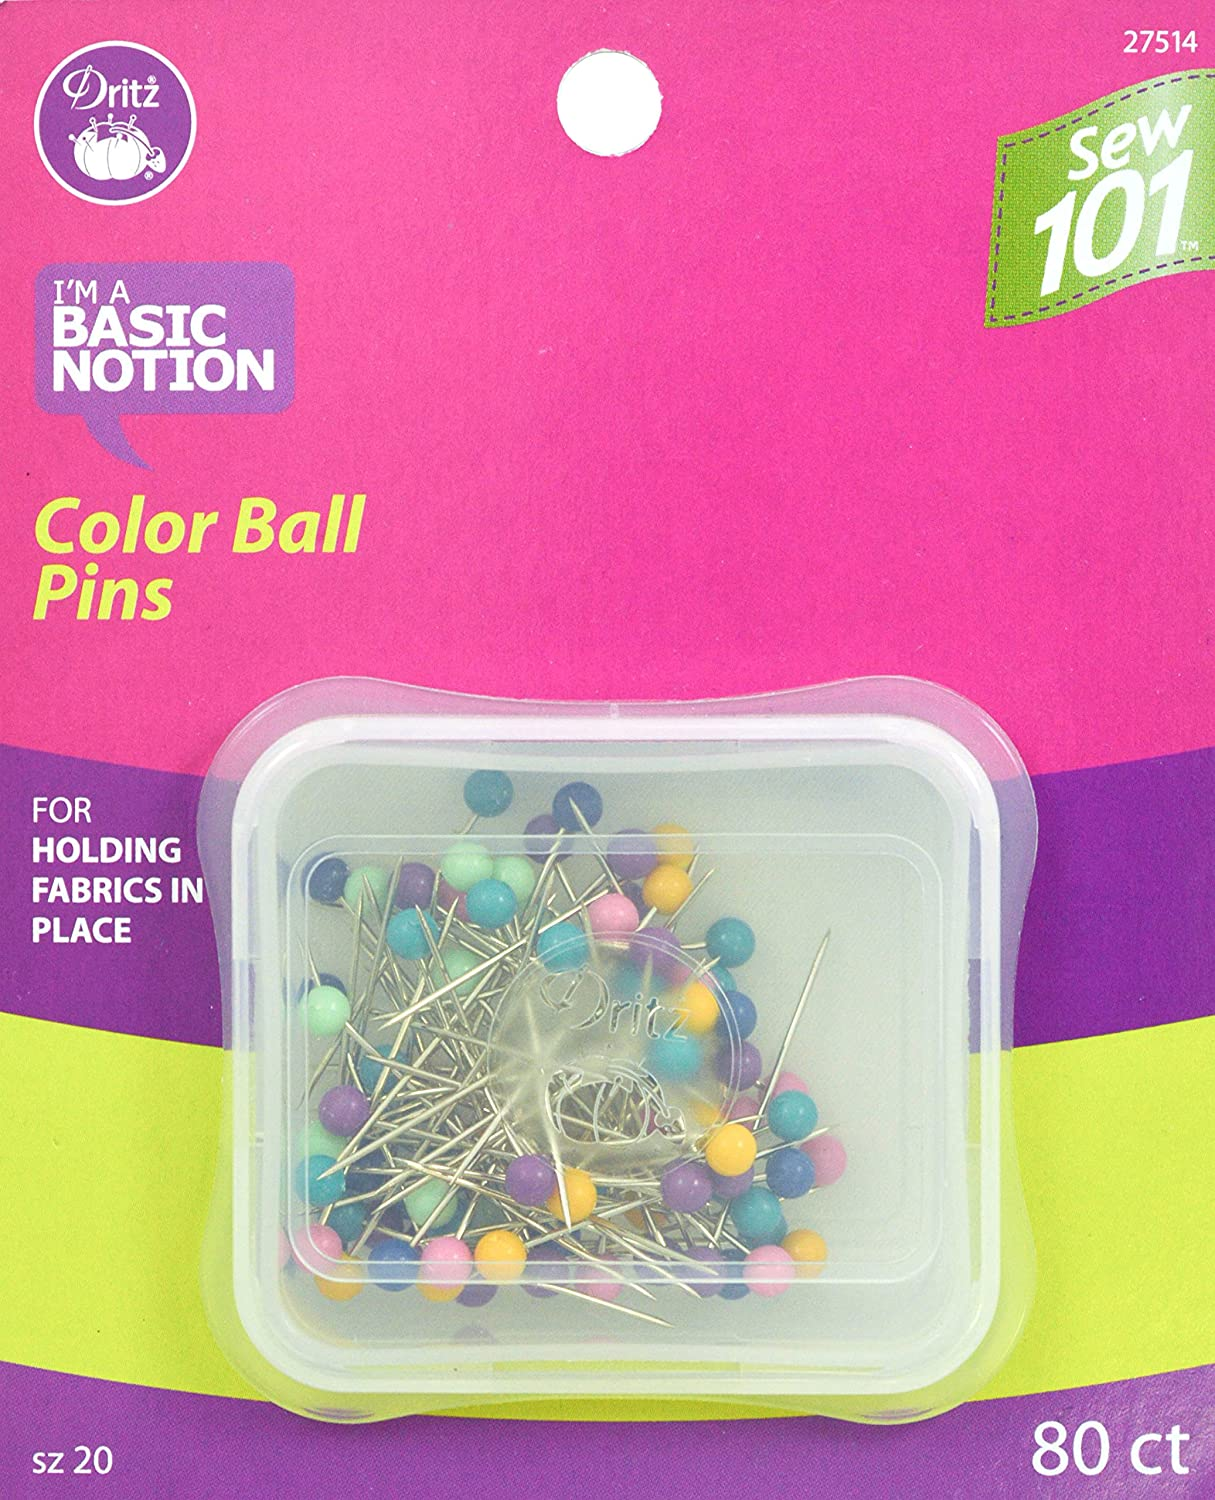 Dritz Sewing 101 S101 Color Ball Pins 80 ct Sewing 101 Color Ball Pins, Size 20-80 Ct Prym Consumer 27514